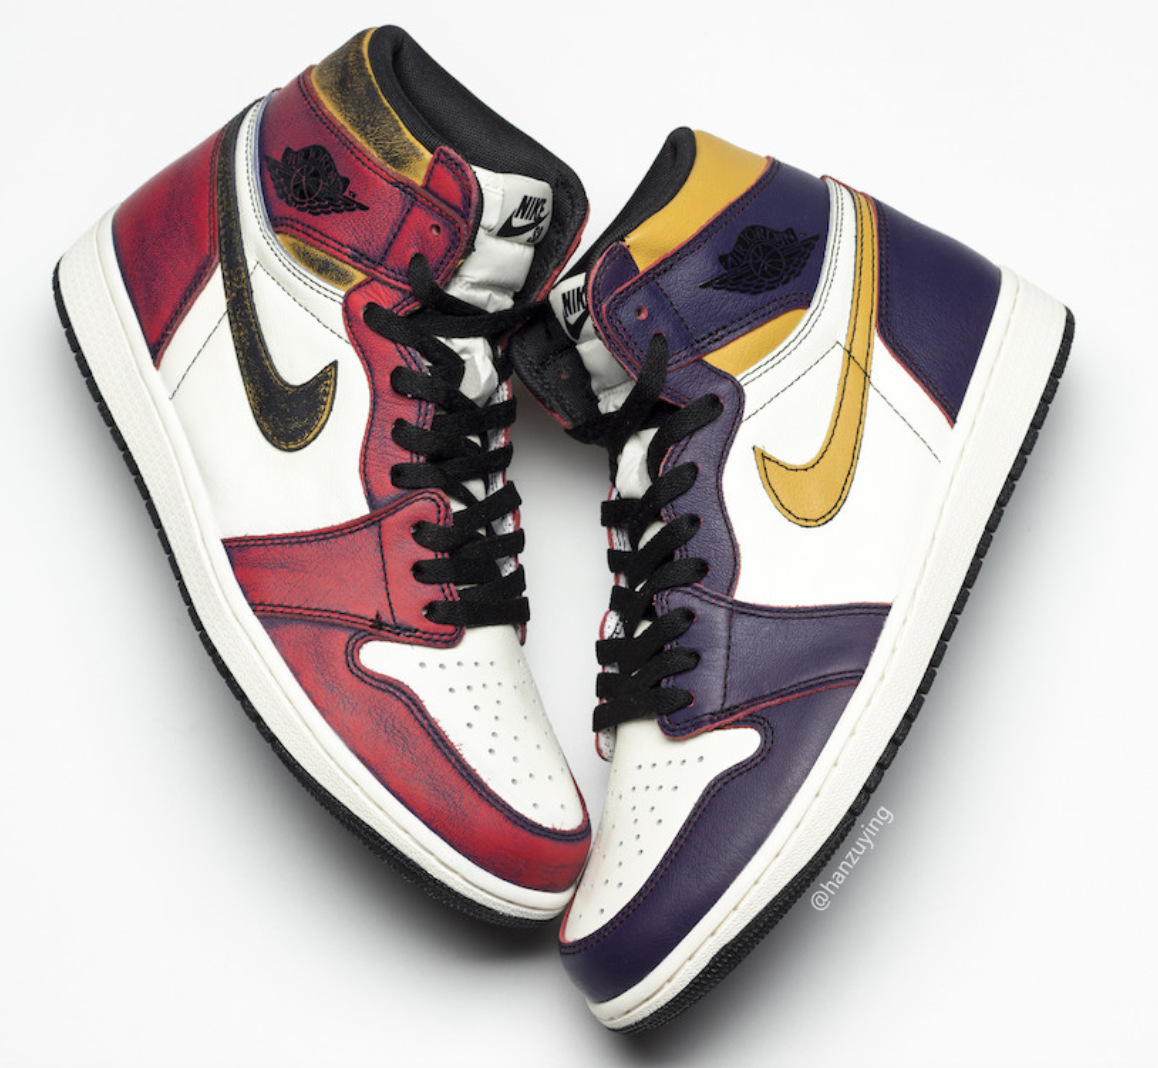 new product 0237e 52ad0 Load image into Gallery viewer, Nike SB x Air Jordan 1 Retro High OG Slots  ...